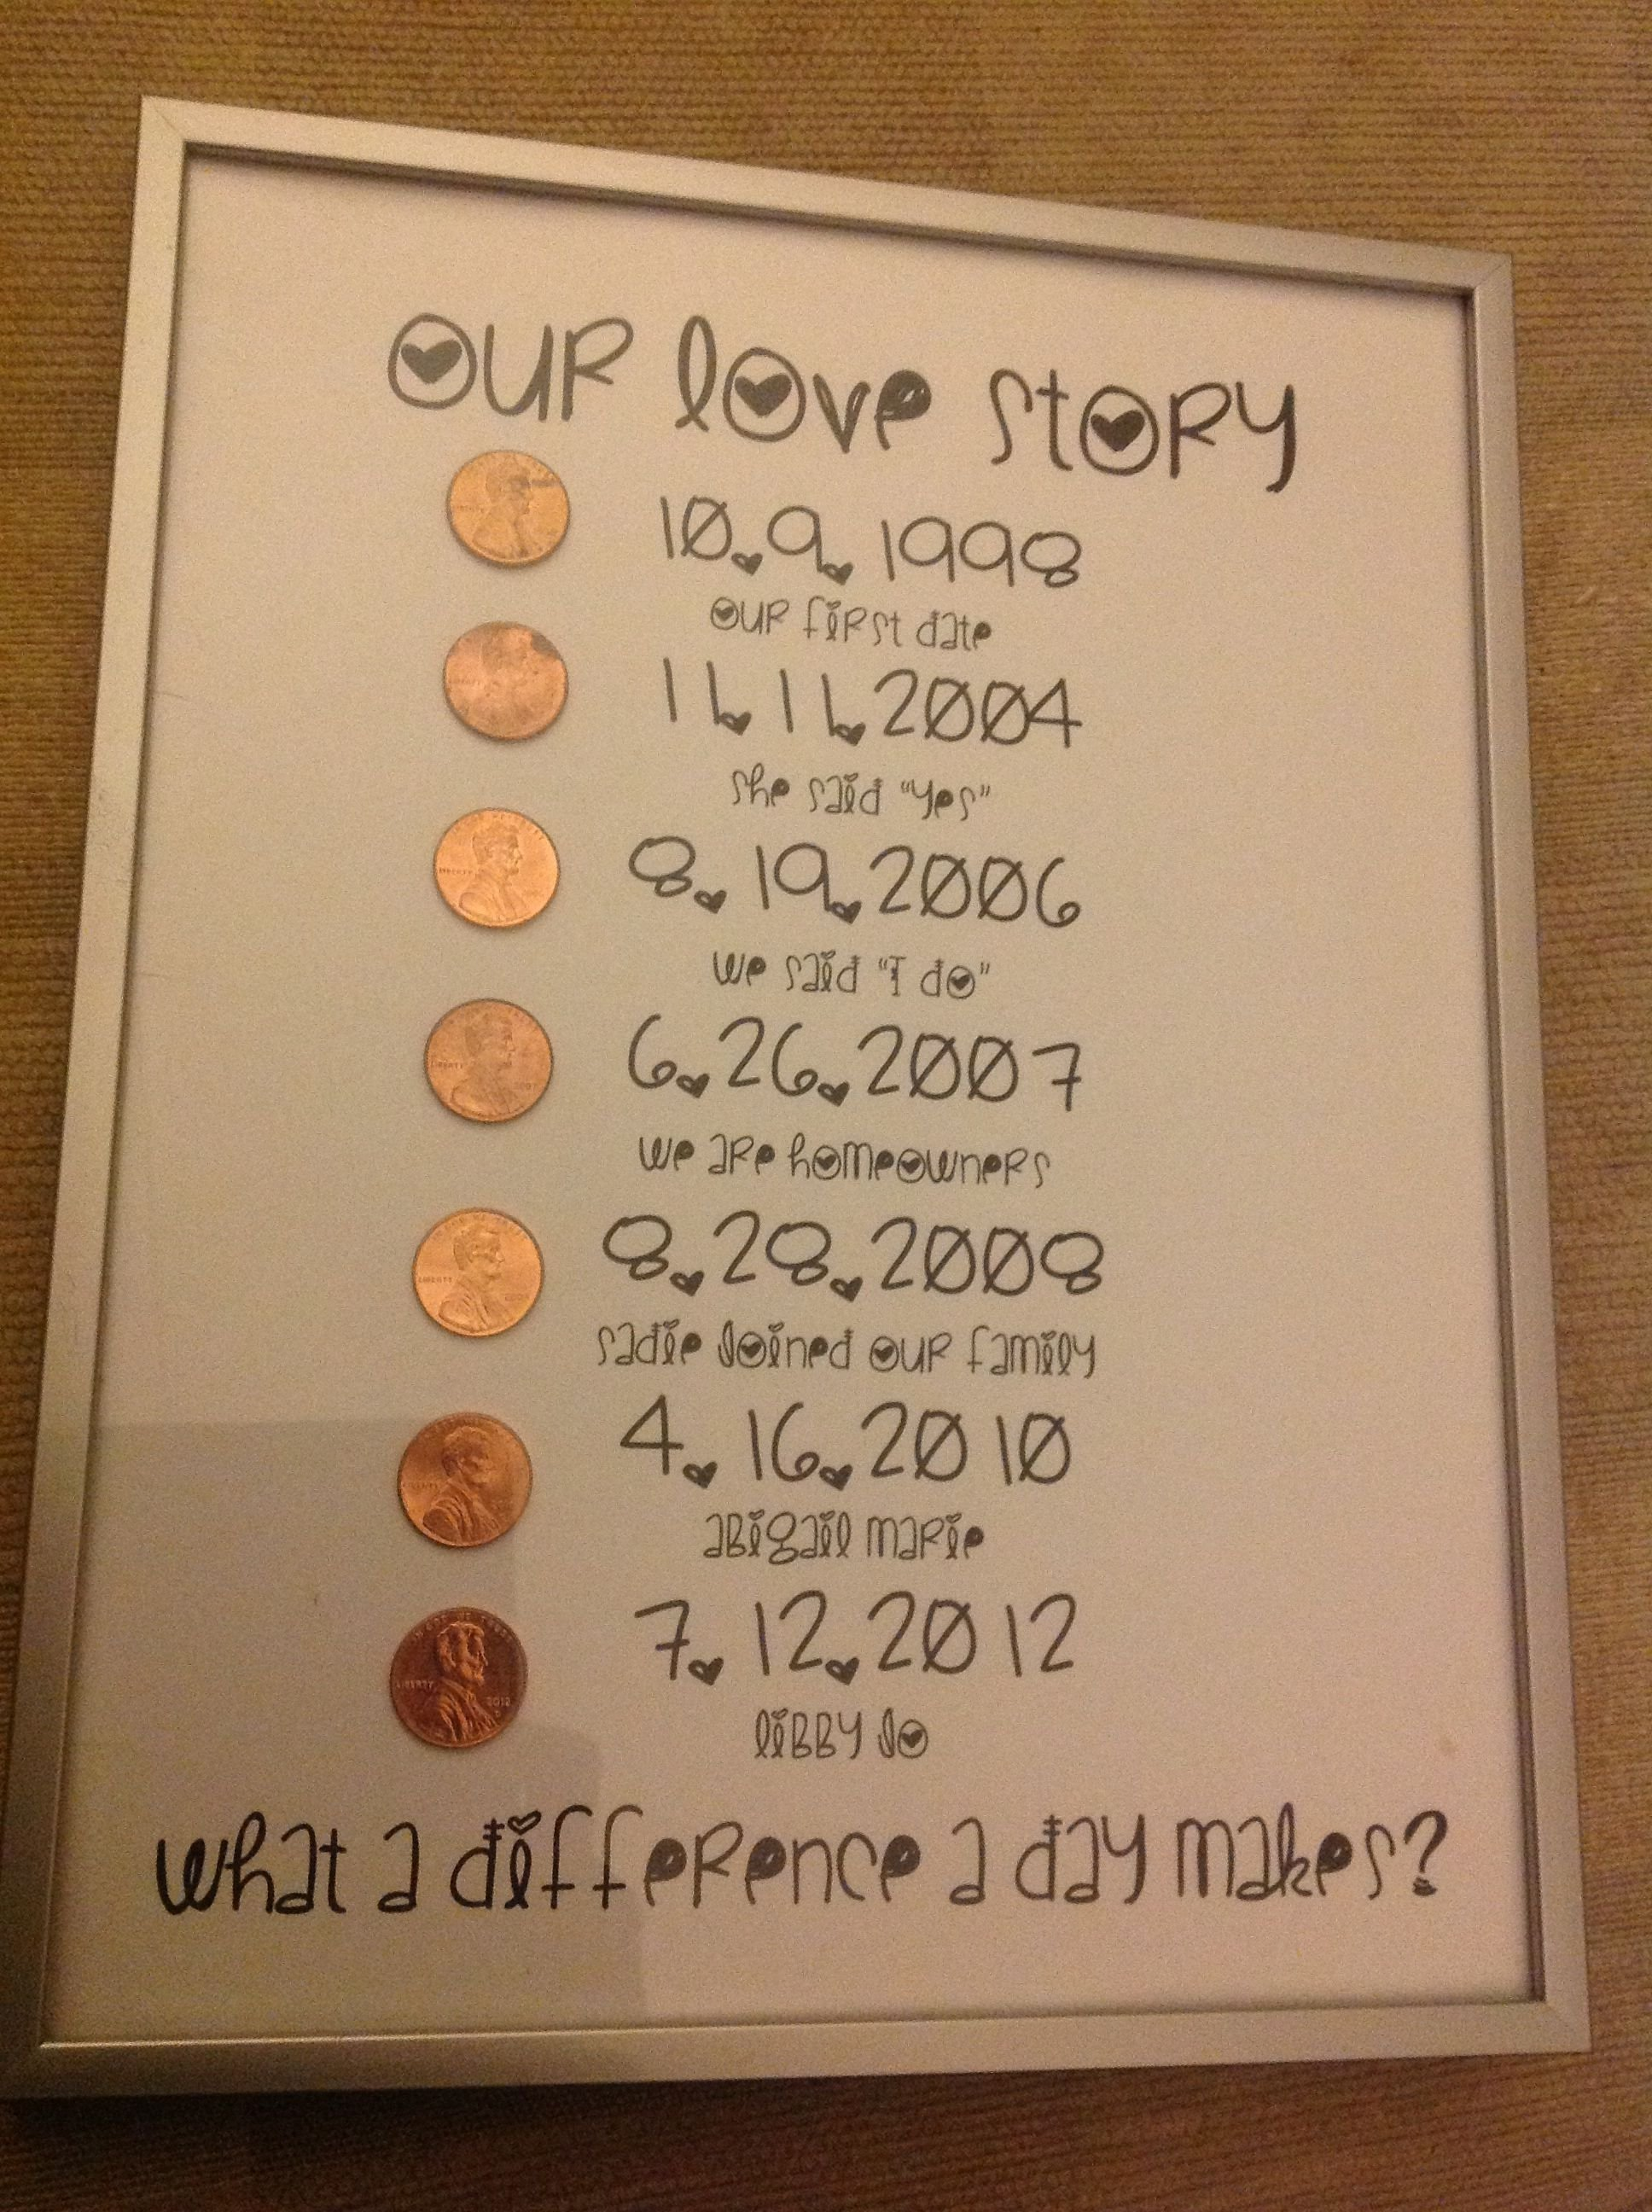 10 Amazing 2 Year Anniversary Ideas Him in honor of our 7yr anniversarycopper anniversary gift ideas 31